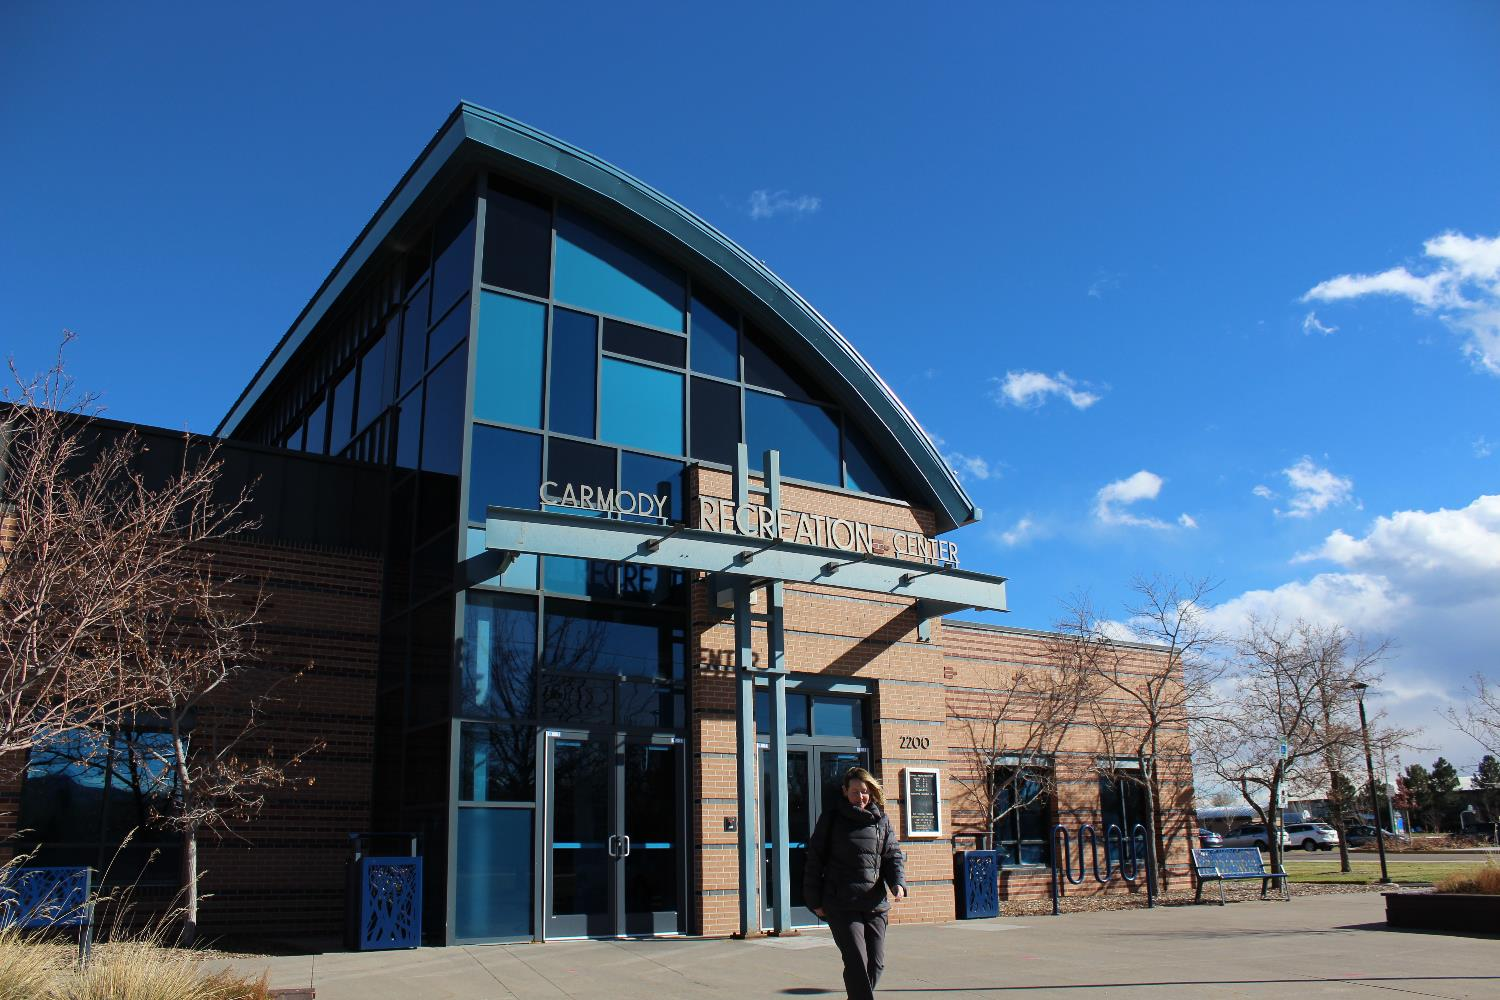 carmody recreation center exterior